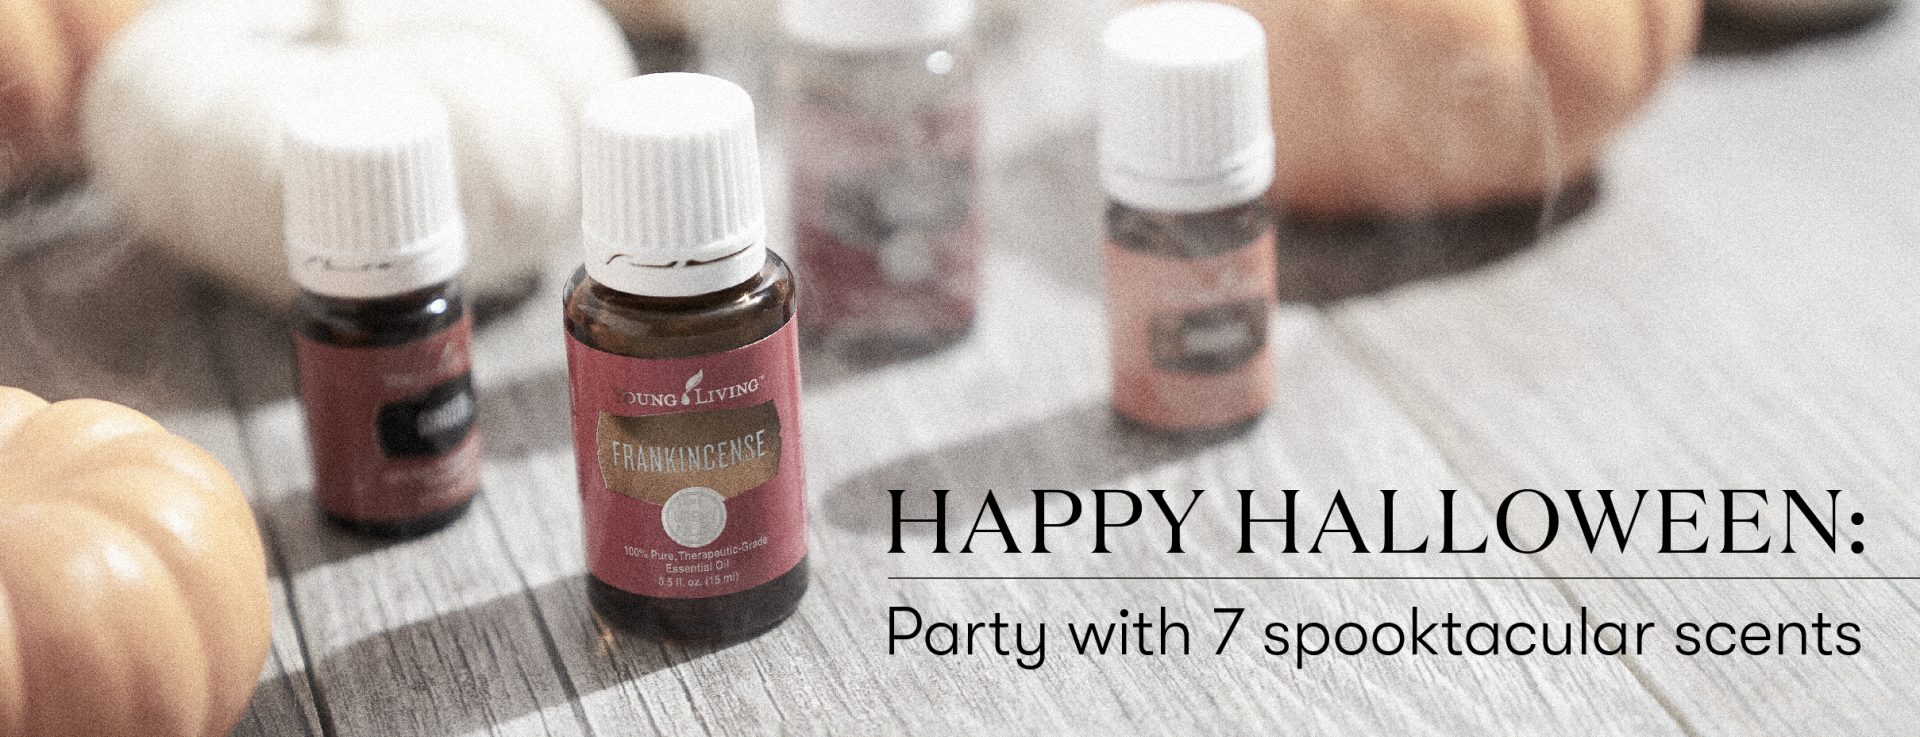 Happy Halloween Party with 7 spooktacular scents